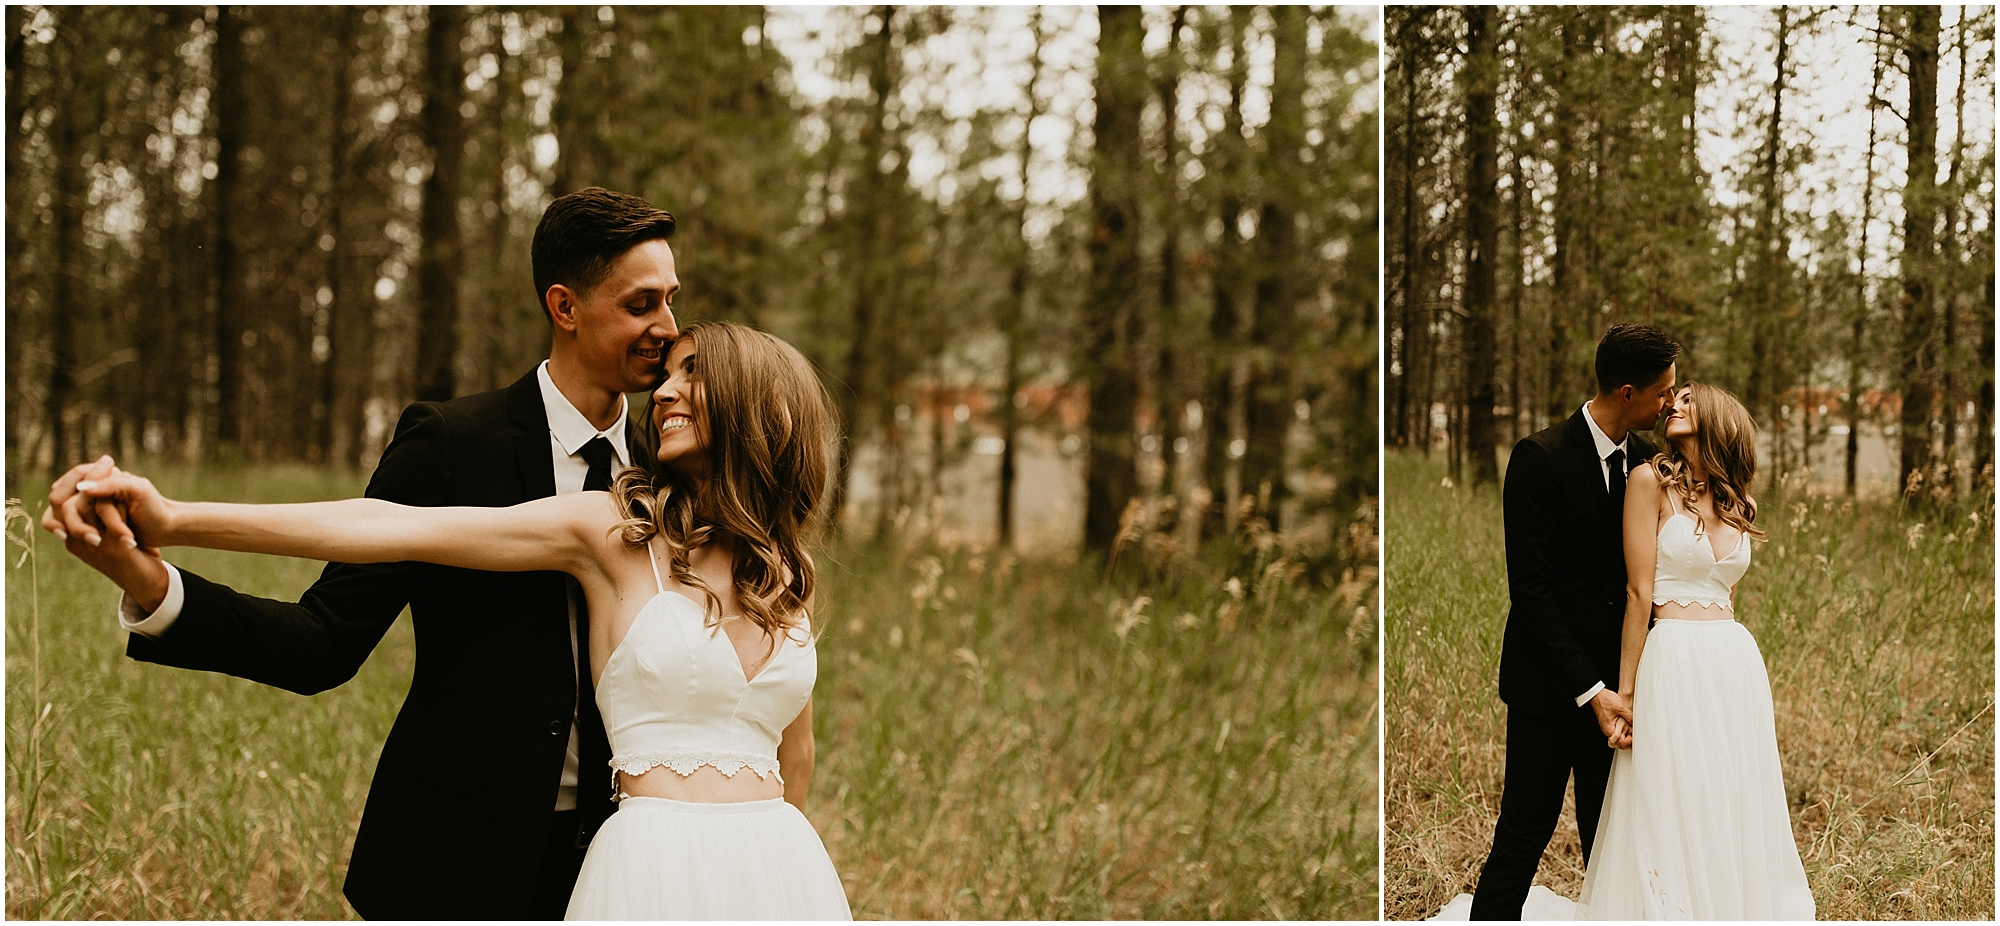 Foxwood House Spokane Wedding Cassie Trottier Photography1079.jpg